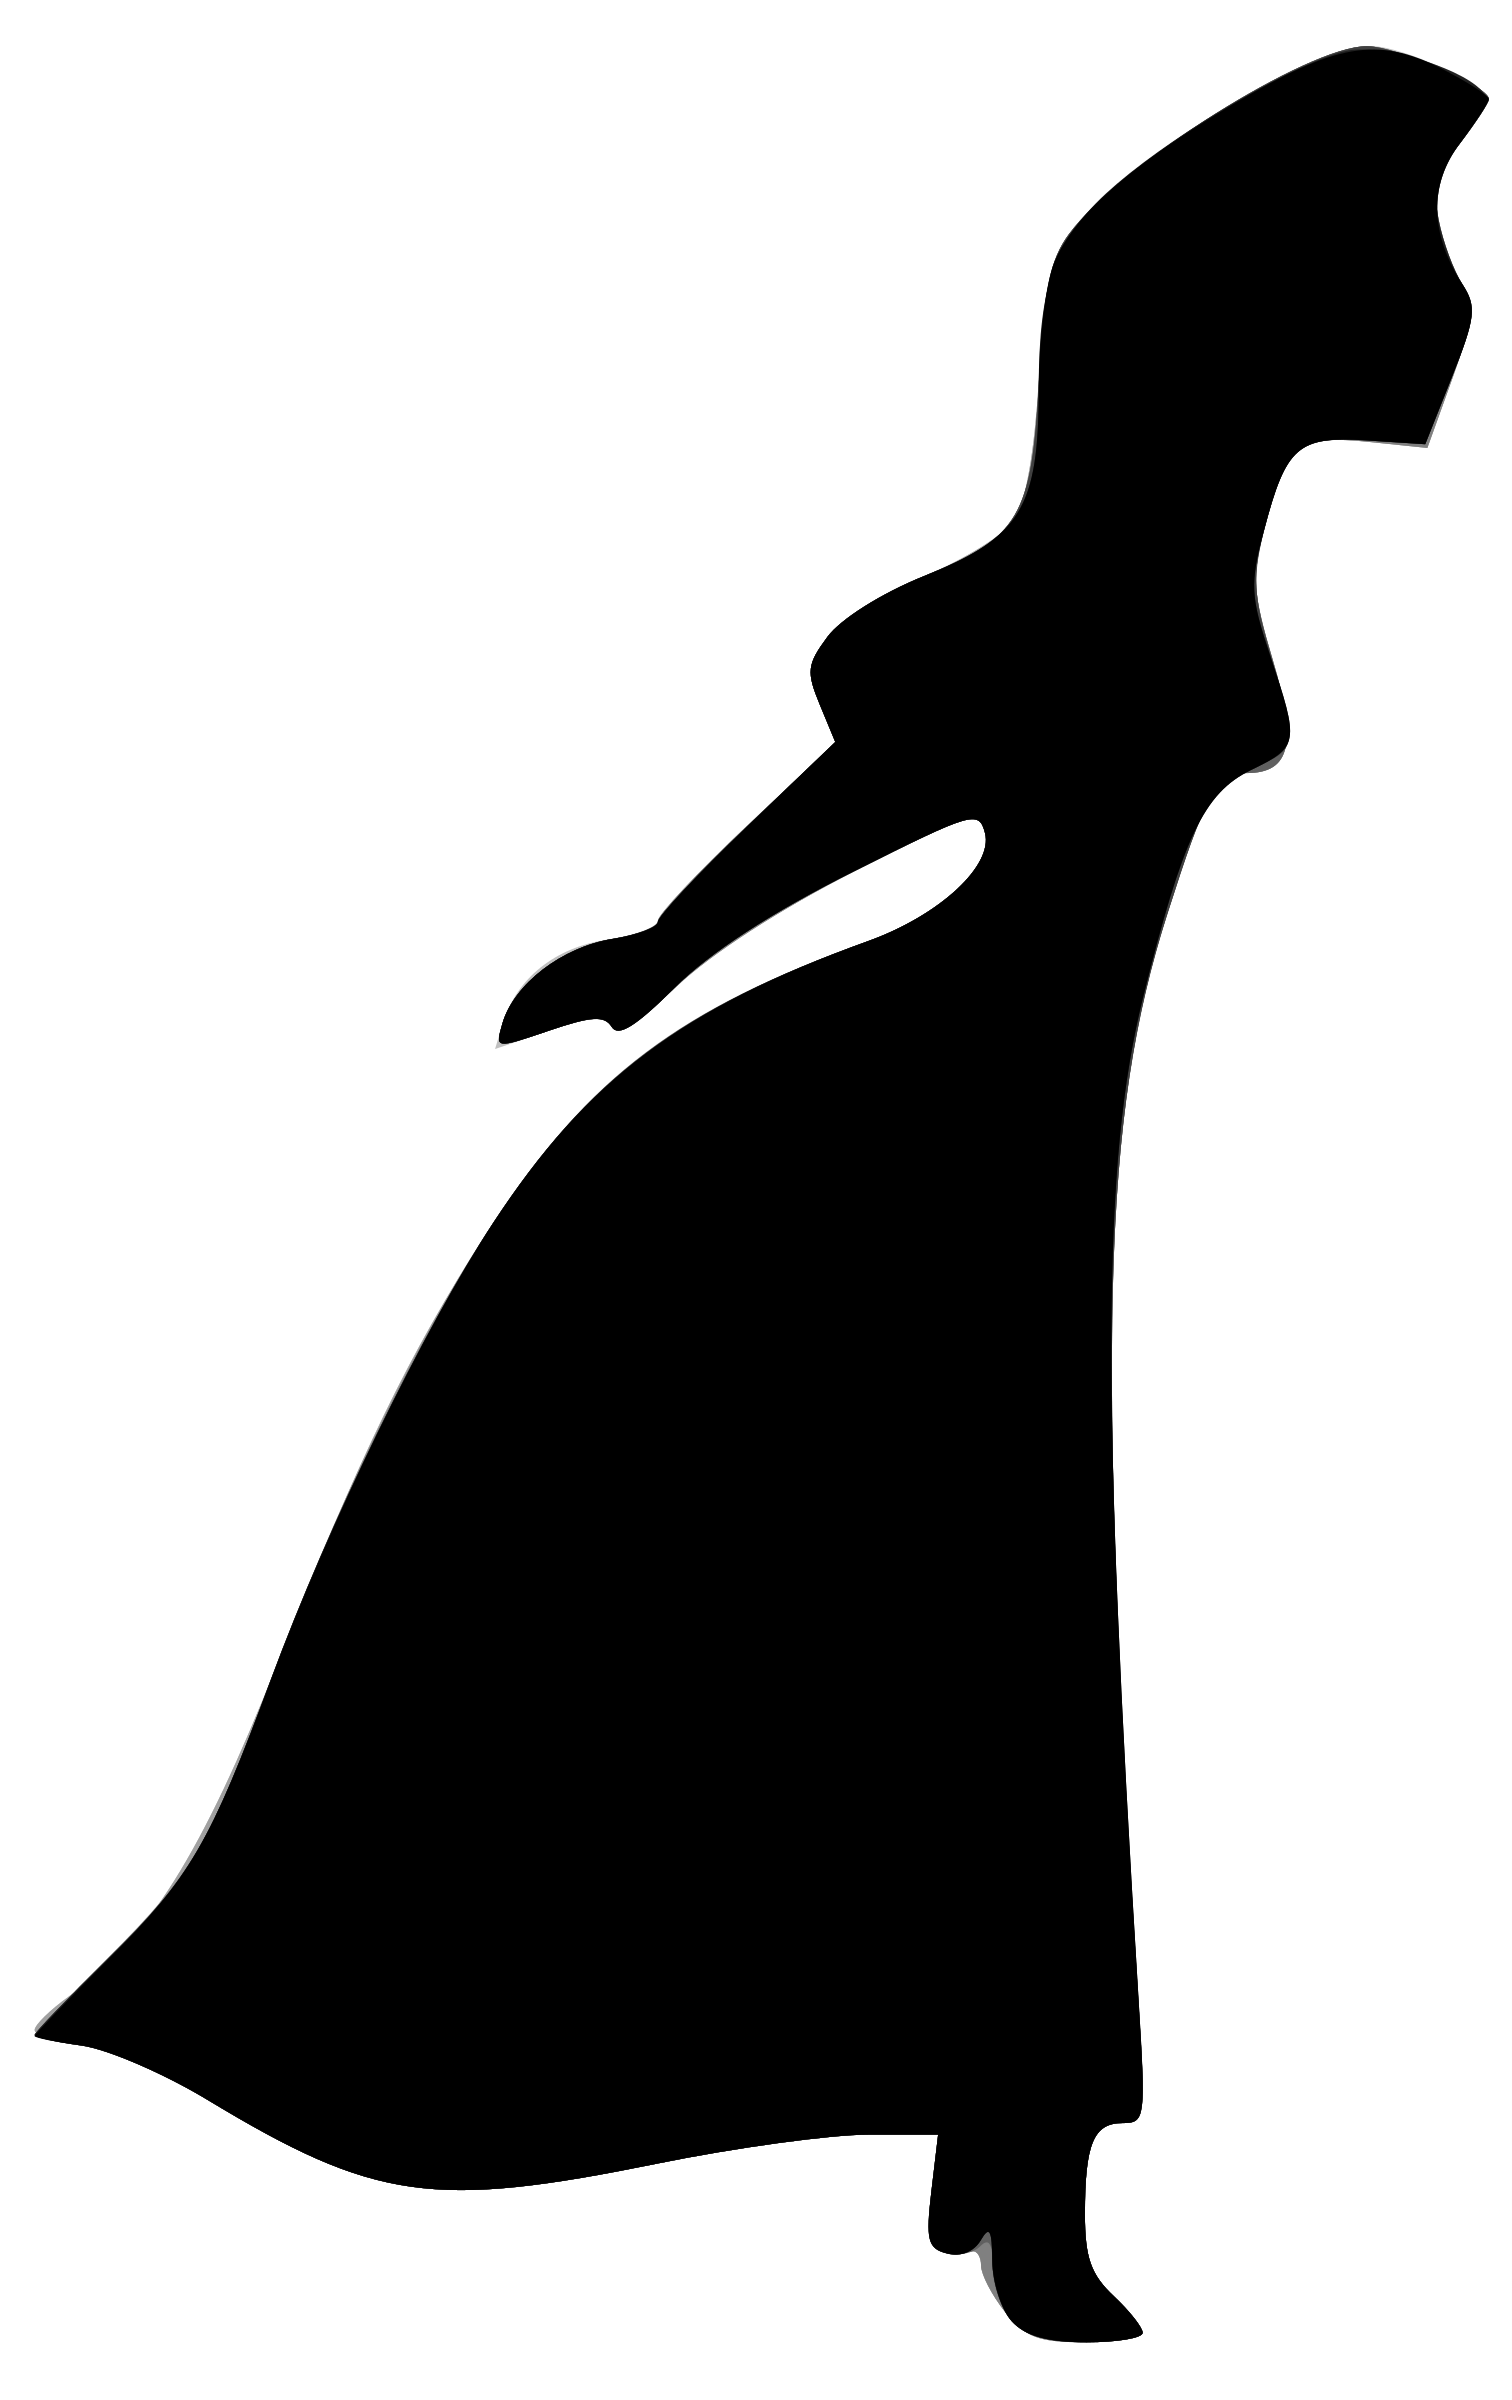 Woman's silhouette by phidari